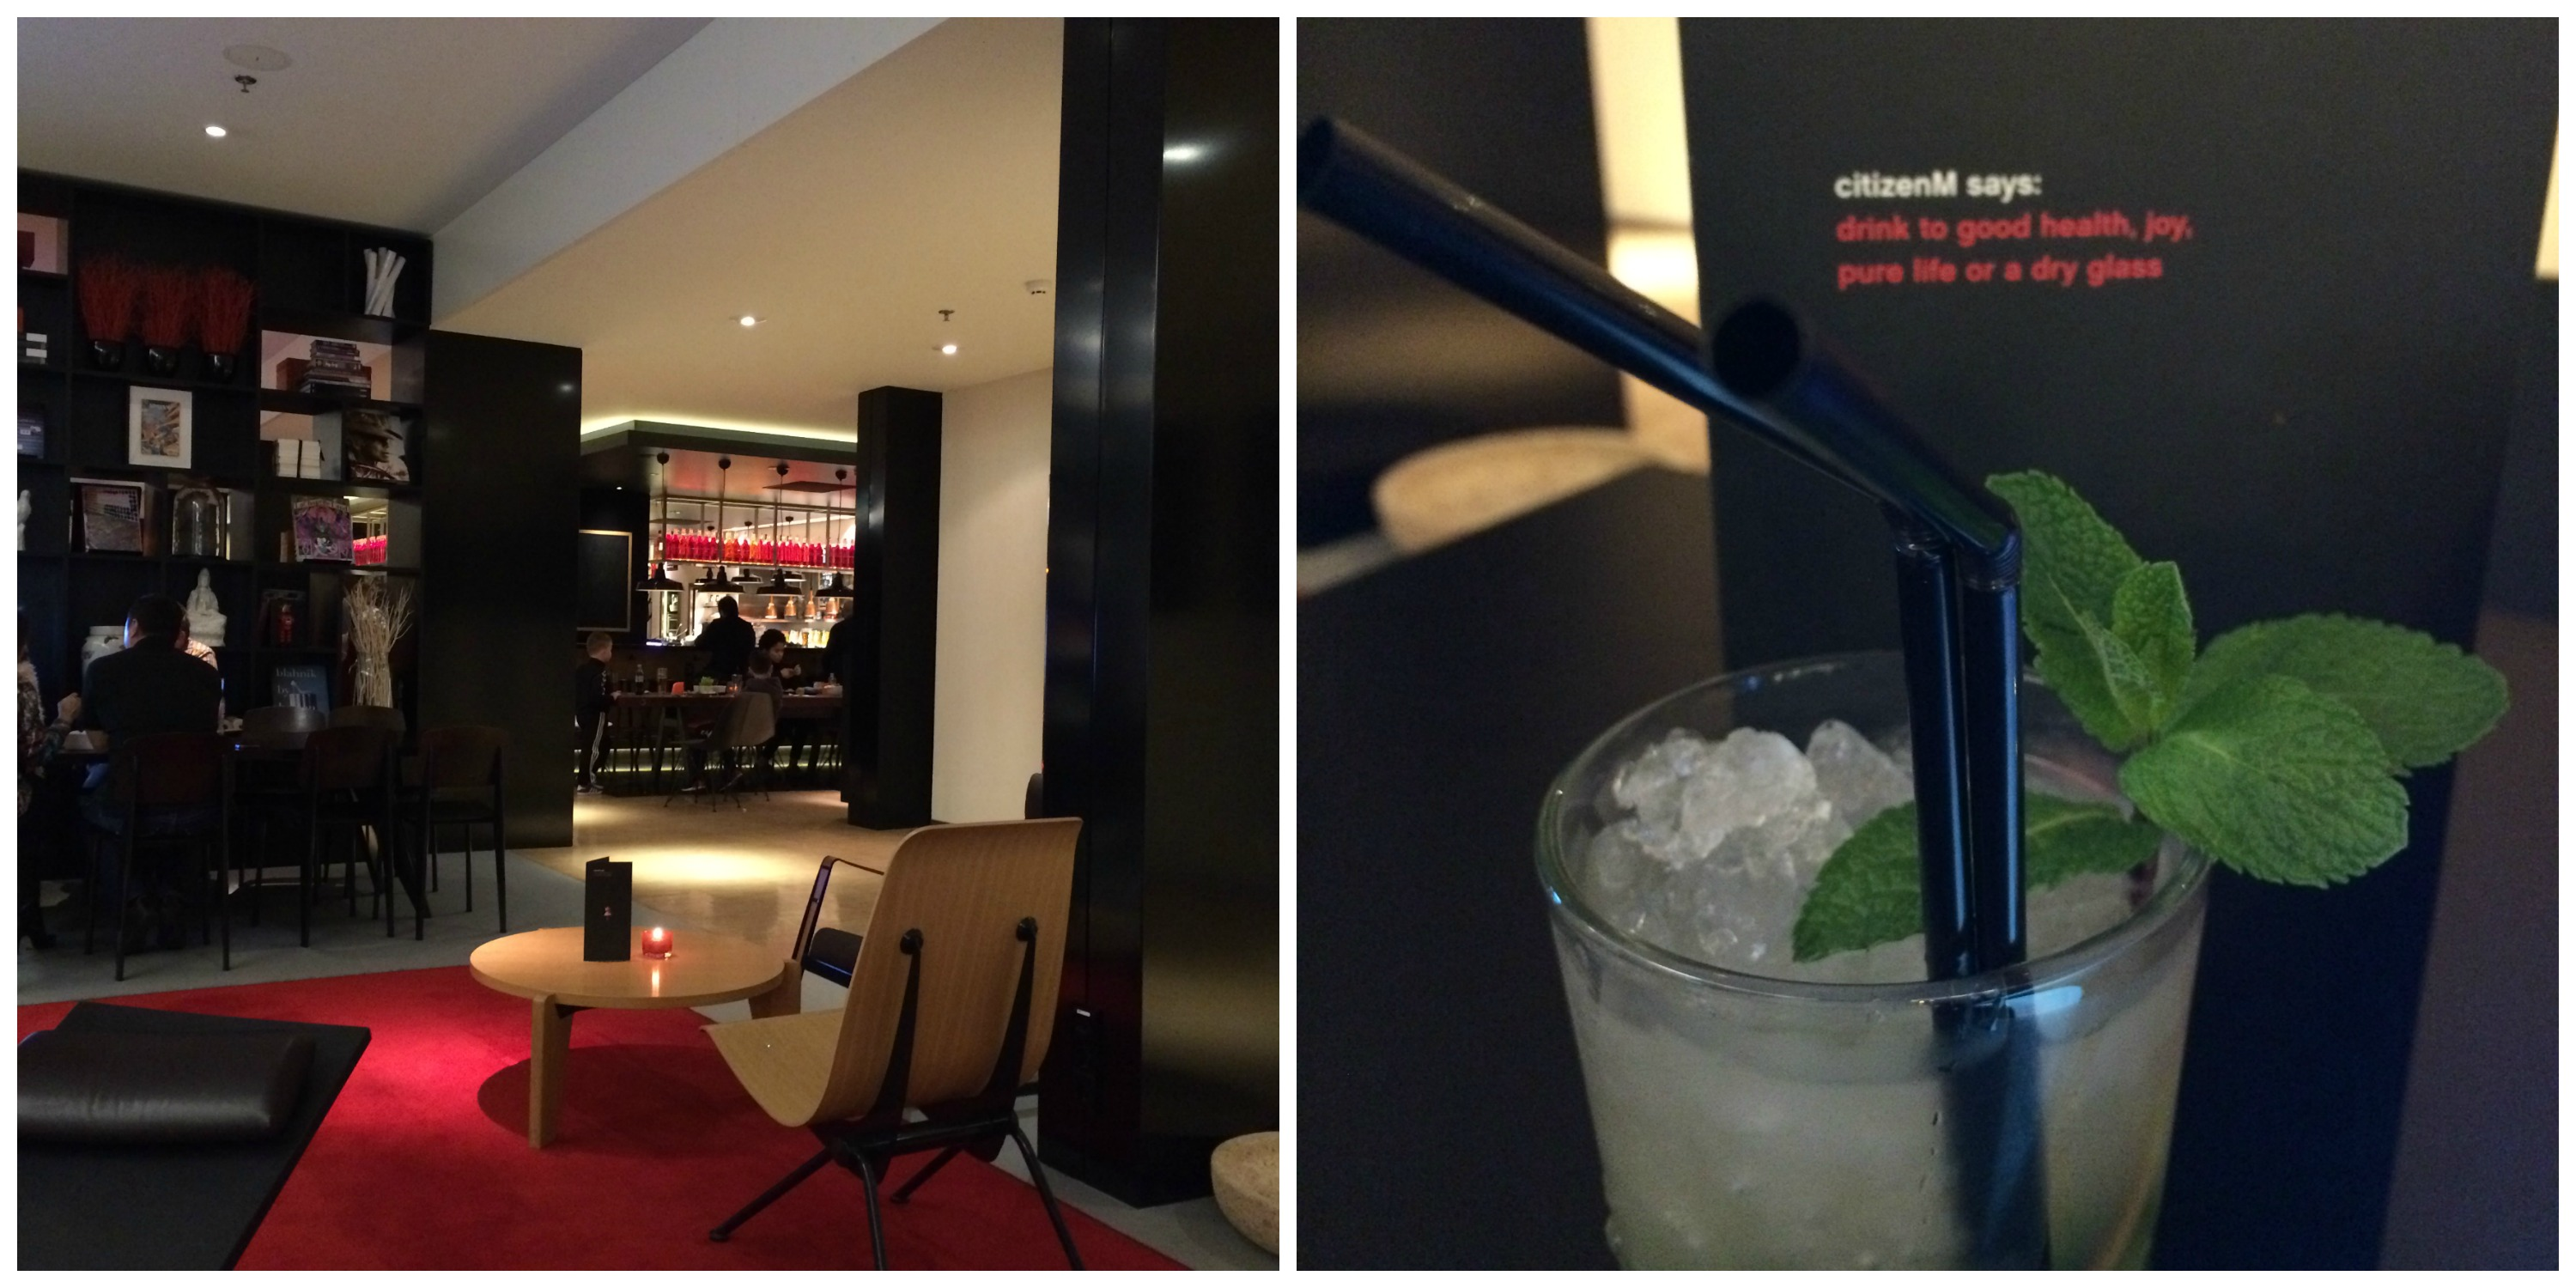 citizenM-bar